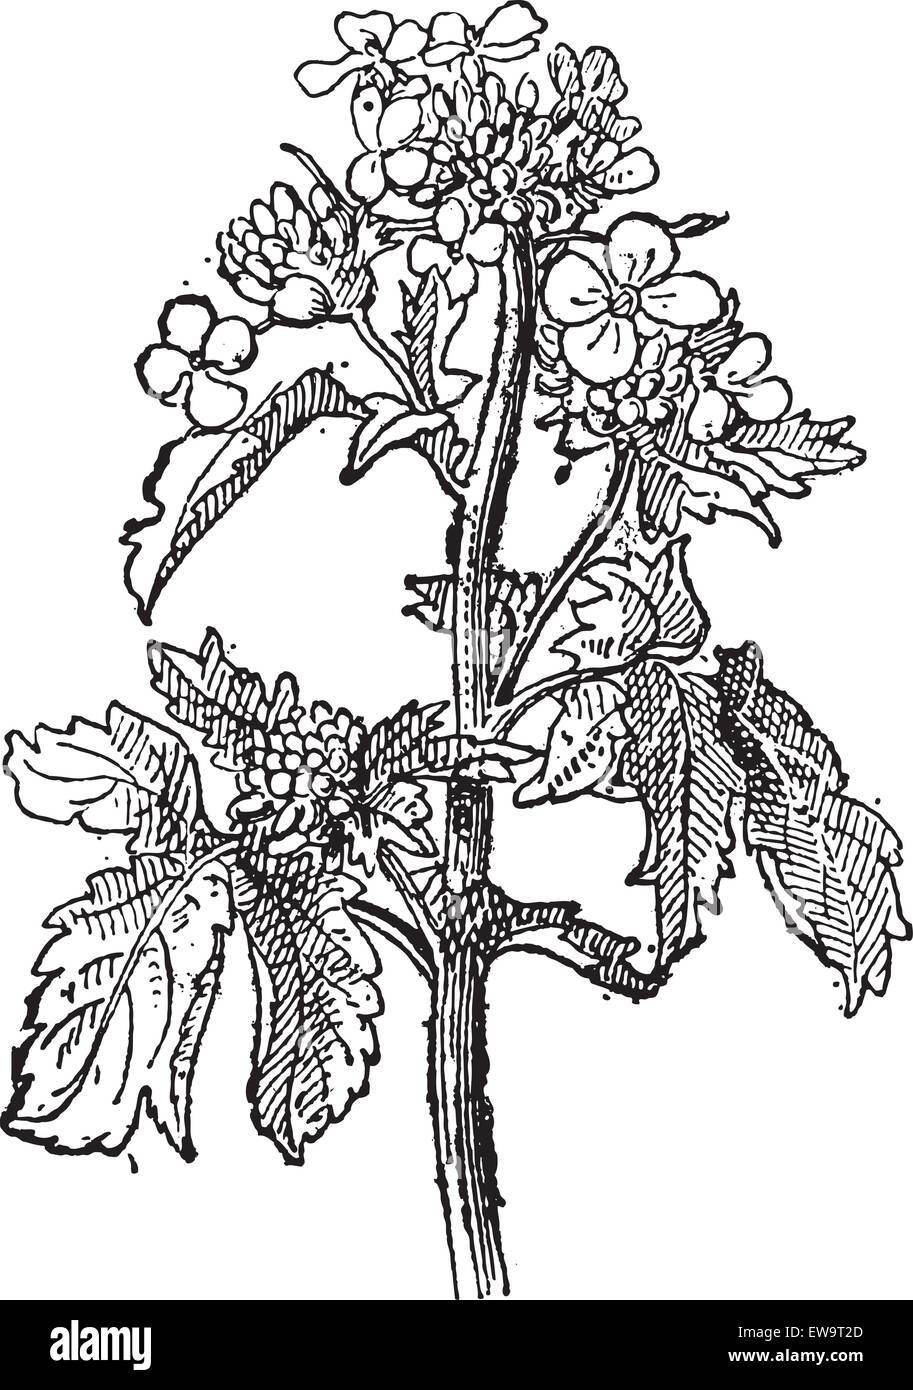 Mustard, Sinapis sp., or Brassica sp., showing flowers, vintage engraved illustration. Dictionary of Words and Things - Stock Image